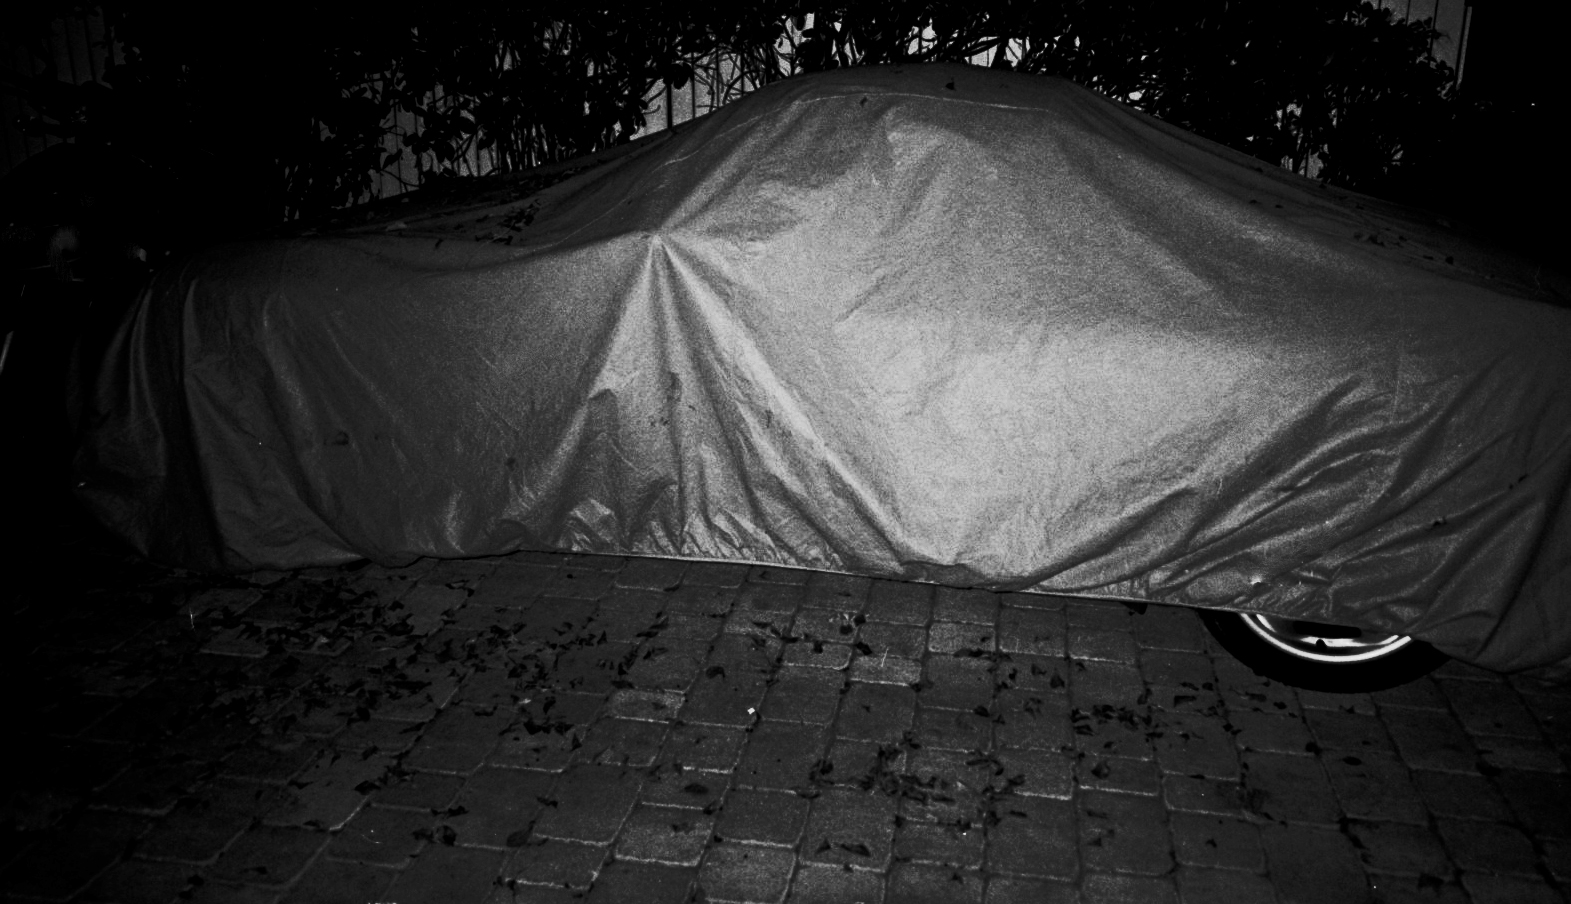 car in blanket.jpg